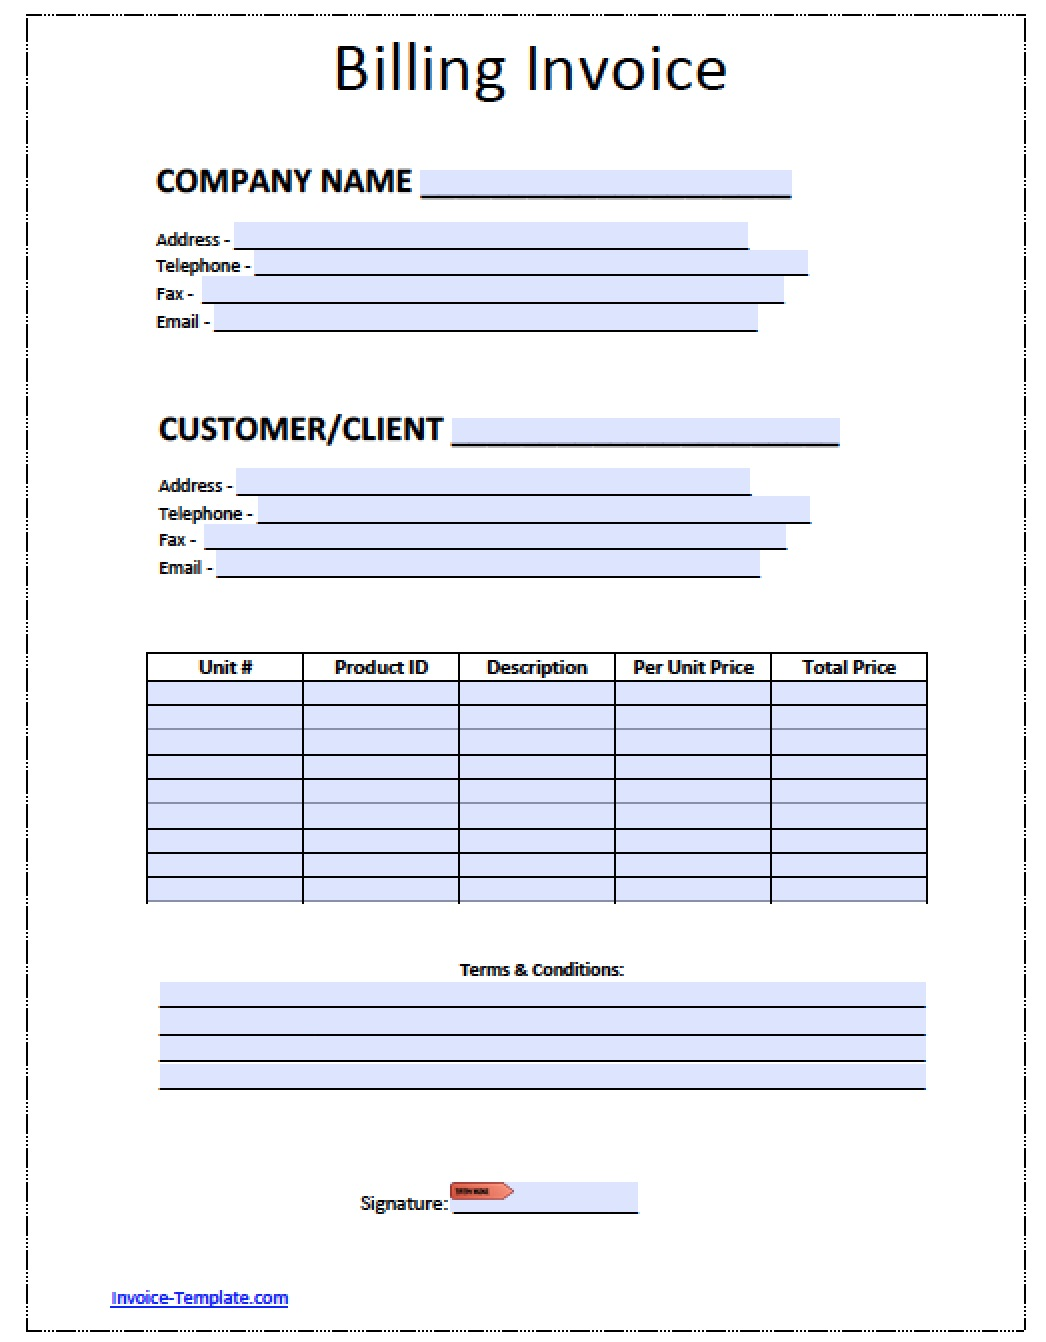 Sample Simple Invoice Template Poesiafmtk - Free simple invoice template pdf